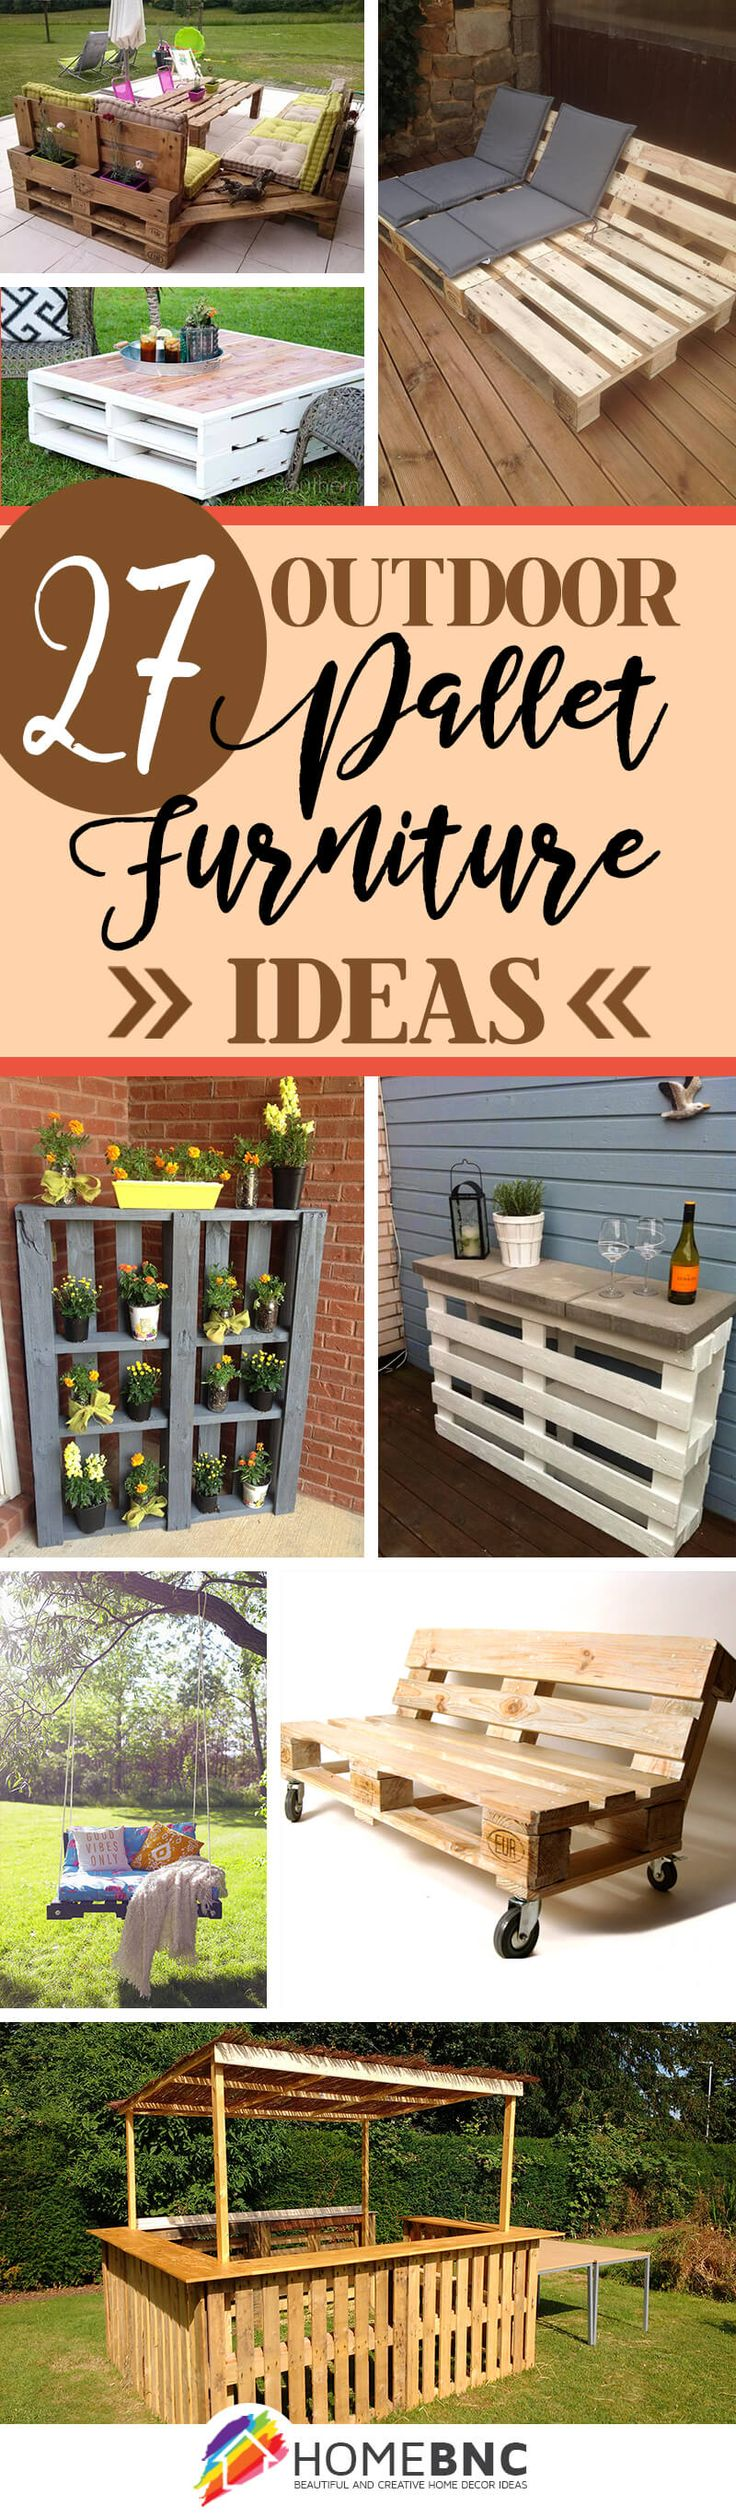 Homemade outdoor furniture ideas - 27 Stunning Outdoor Pallet Furniture Ideas You Ll Love